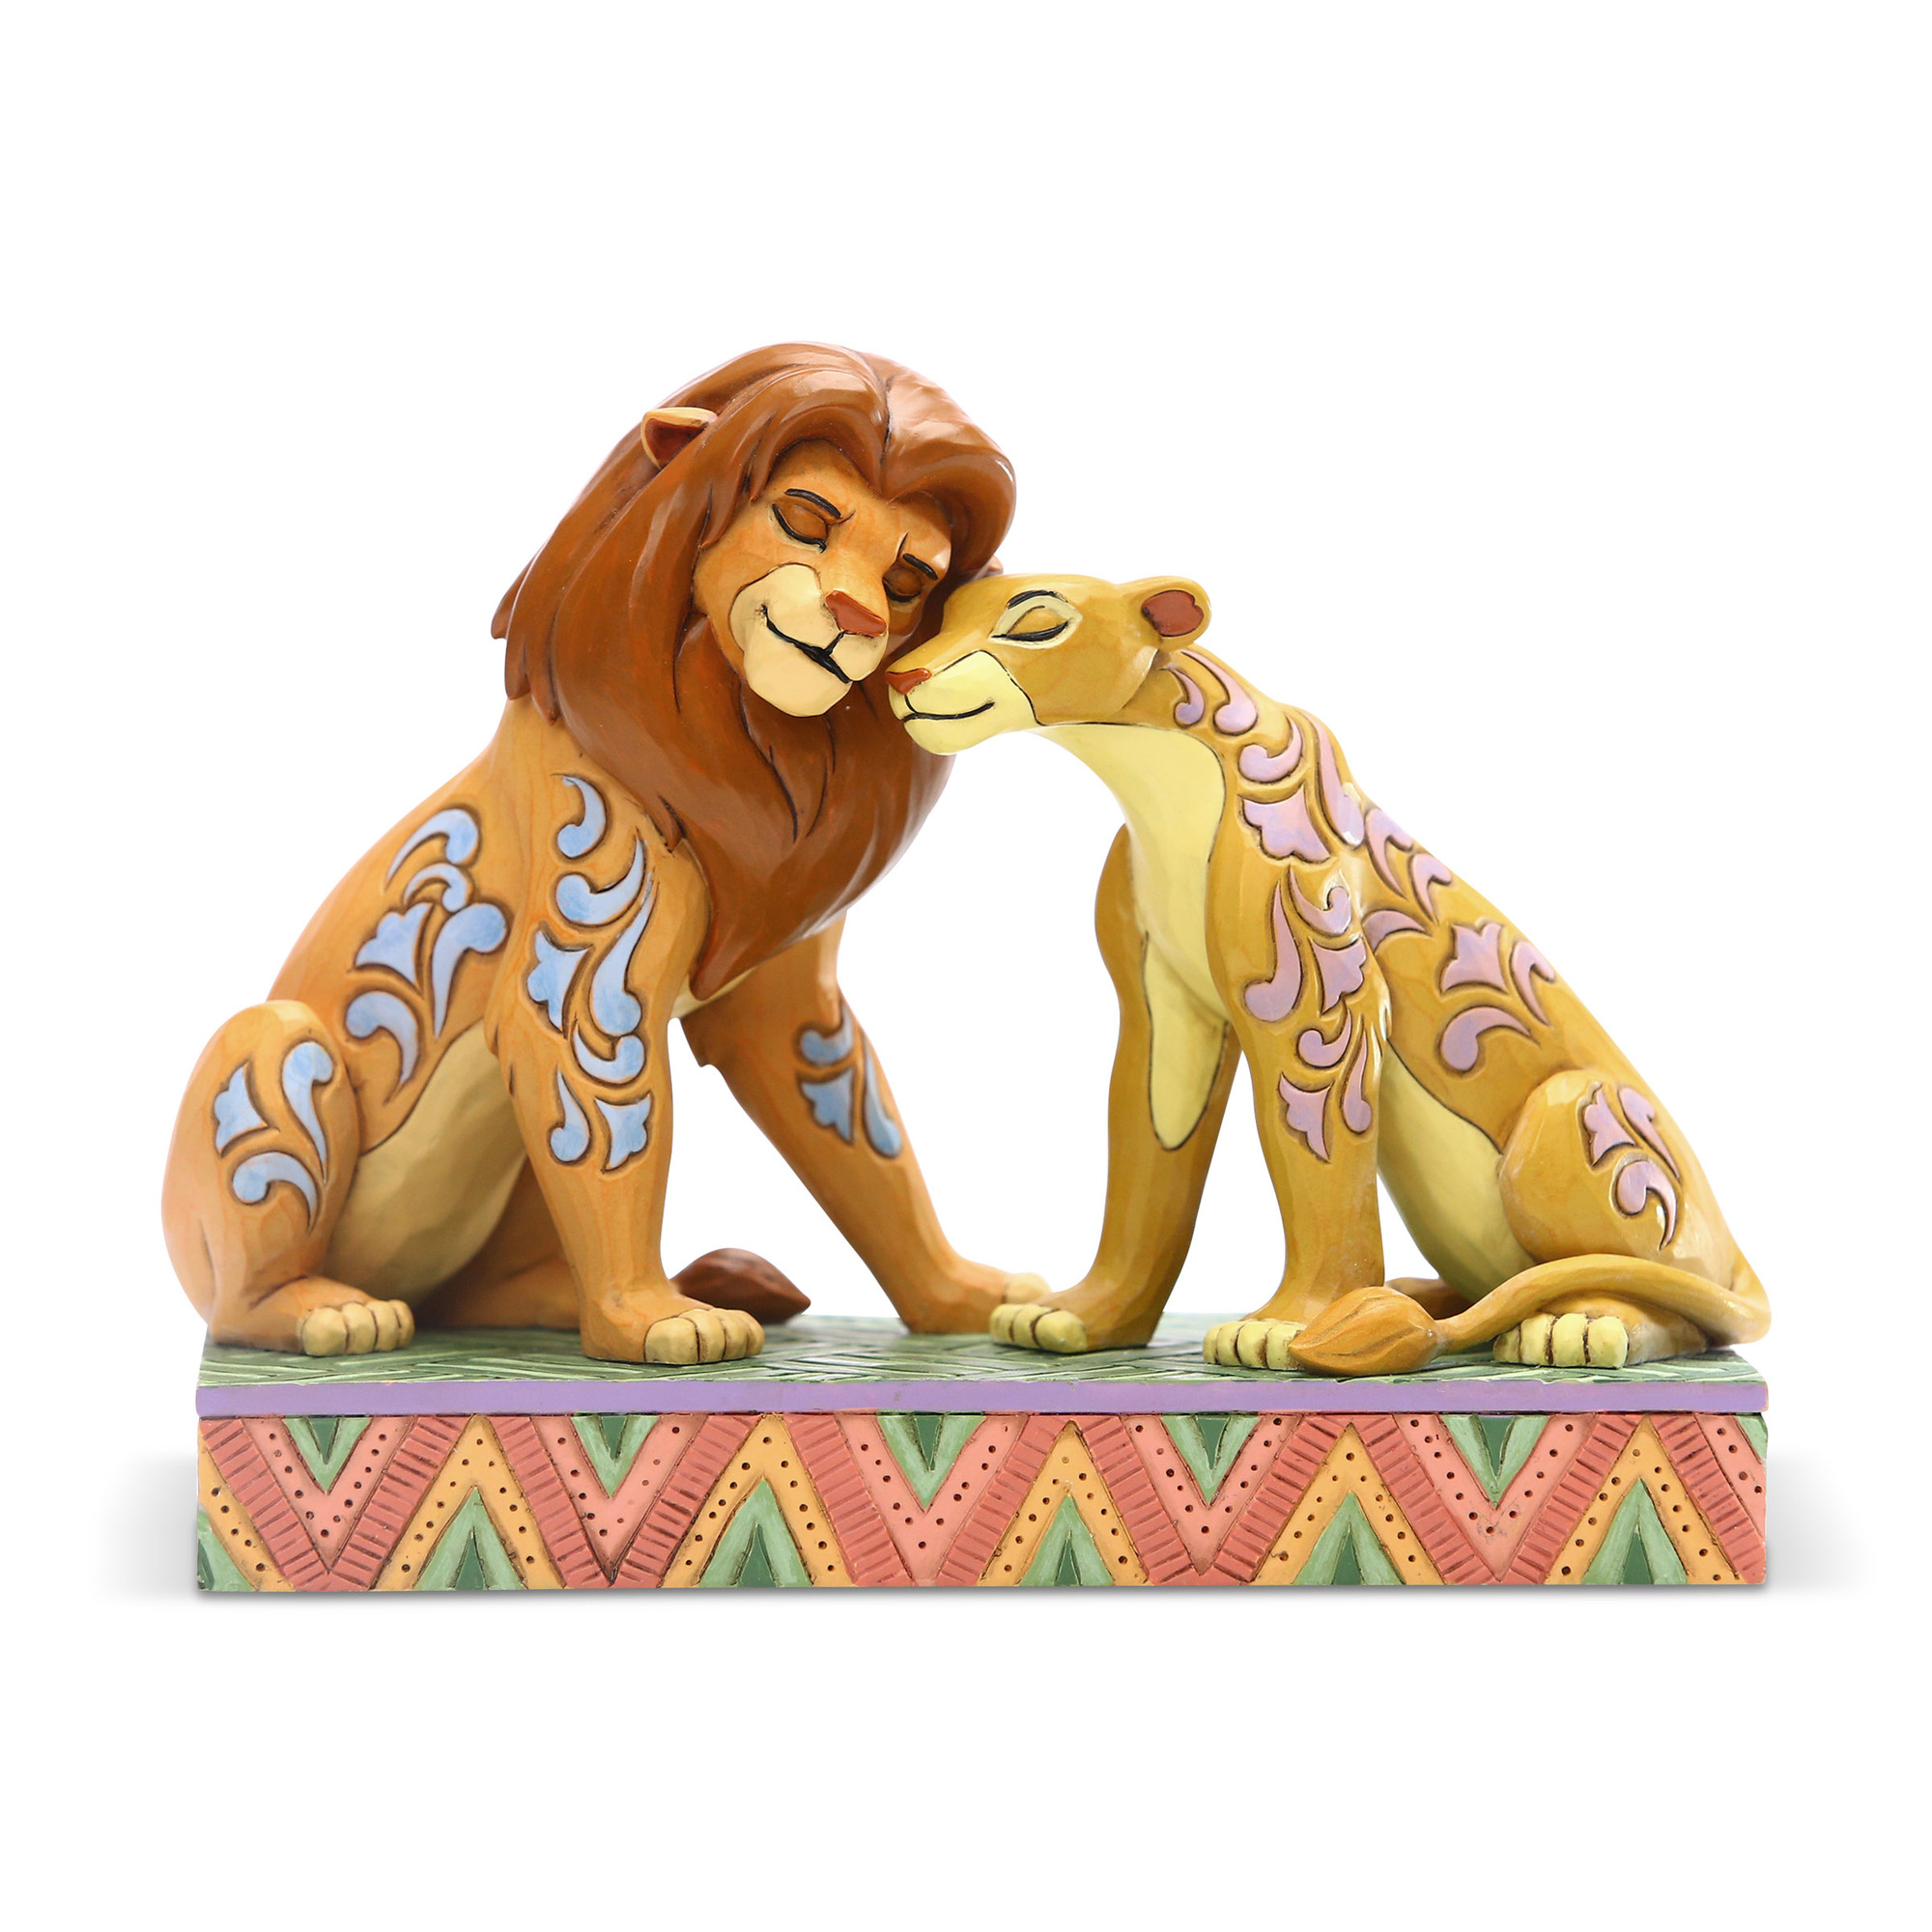 Disney Traditions Lion King Simba & Nala Snuggling Statue